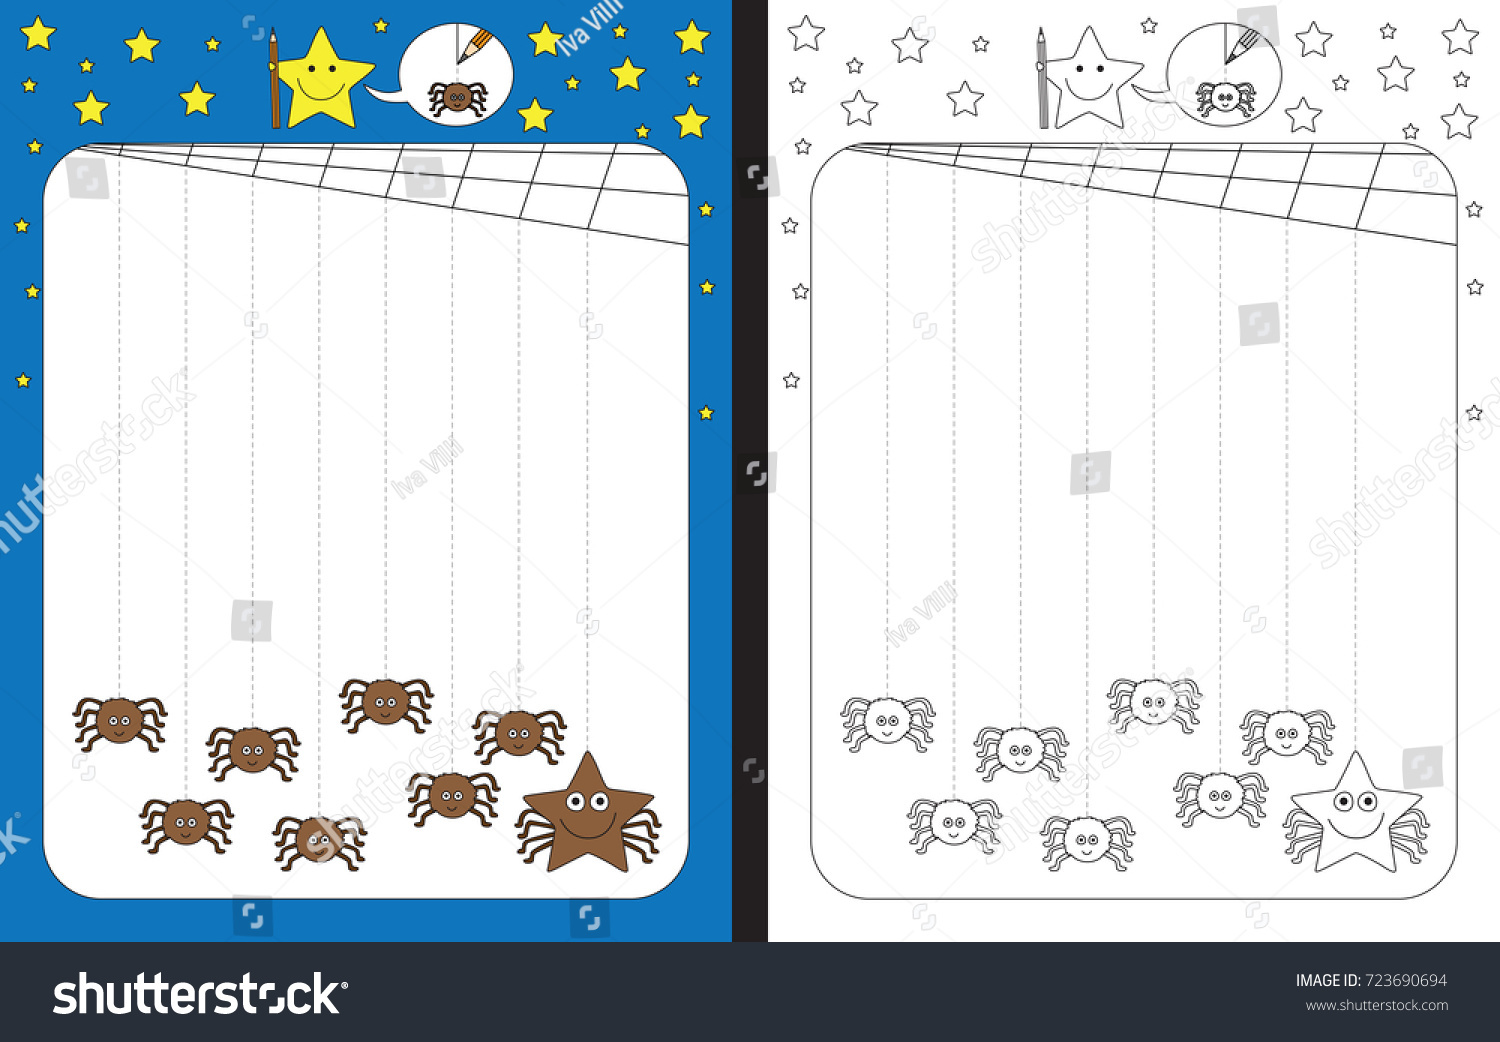 worksheet Fine Motor Skills Worksheets preschool worksheet practicing fine motor skills stock vector for tracing dashed lines from cobweb to spiders